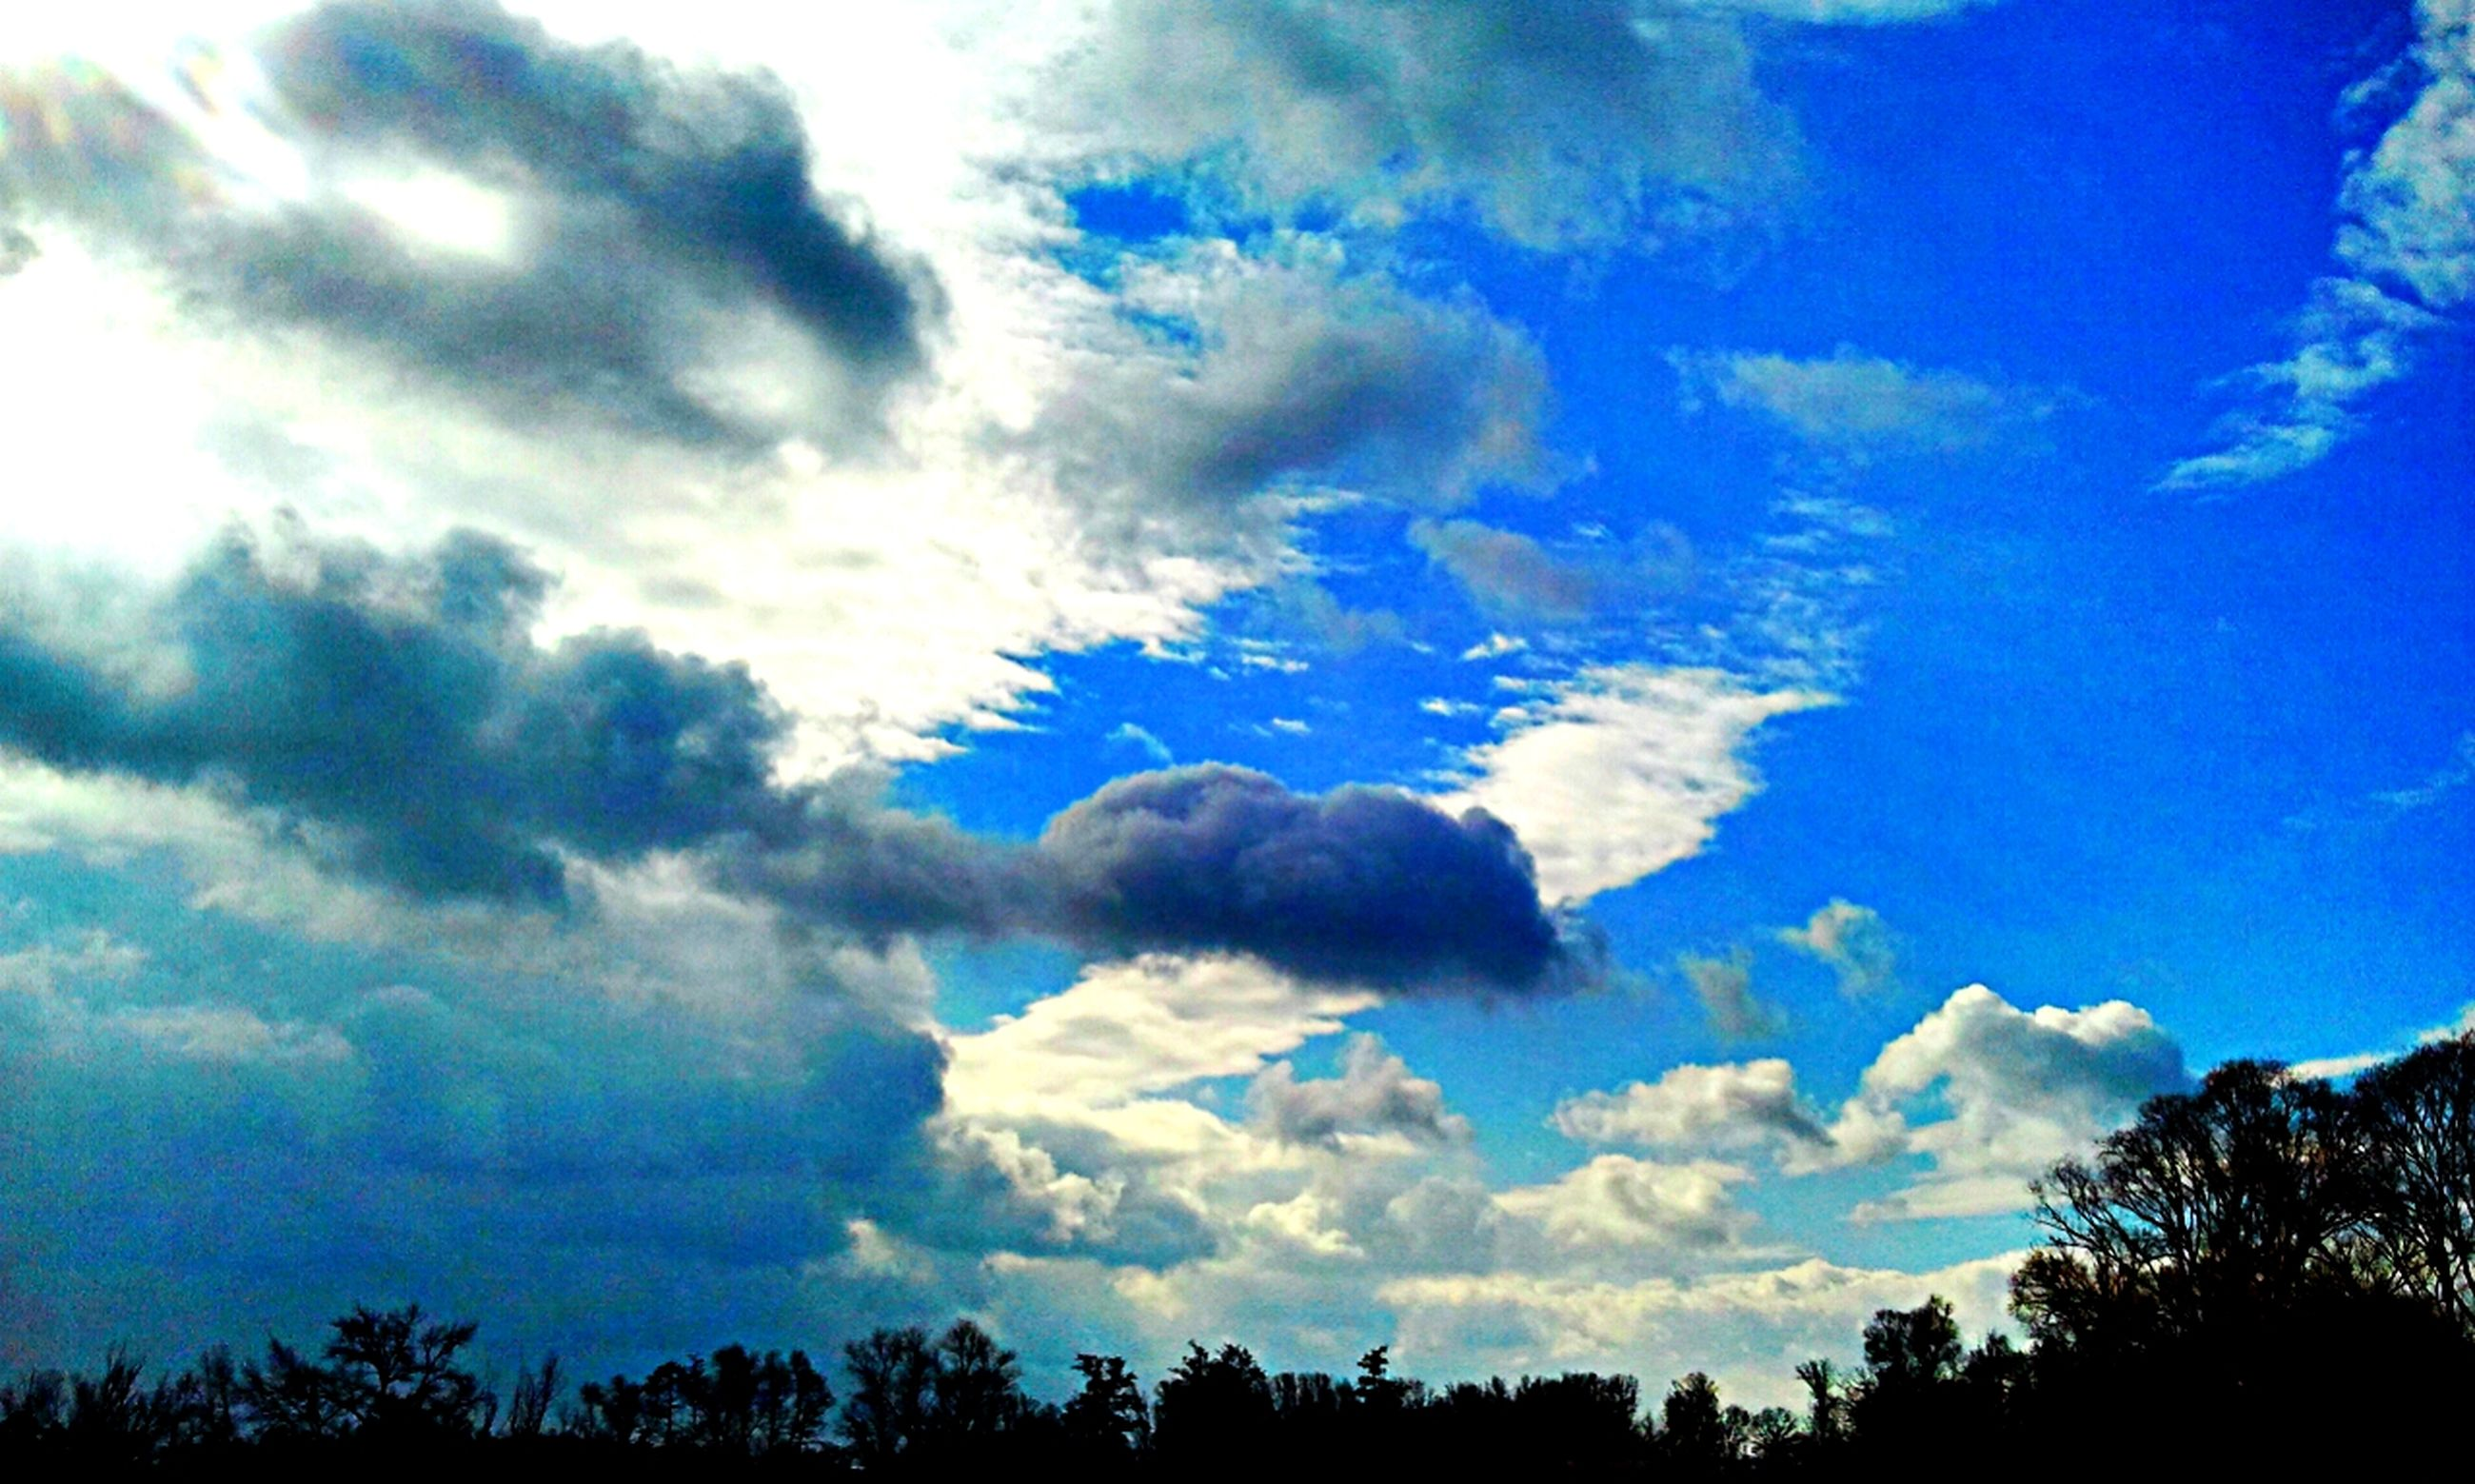 sky, low angle view, blue, silhouette, cloud - sky, tree, tranquility, beauty in nature, scenics, cloud, tranquil scene, nature, cloudy, outdoors, idyllic, no people, day, cloudscape, dusk, growth